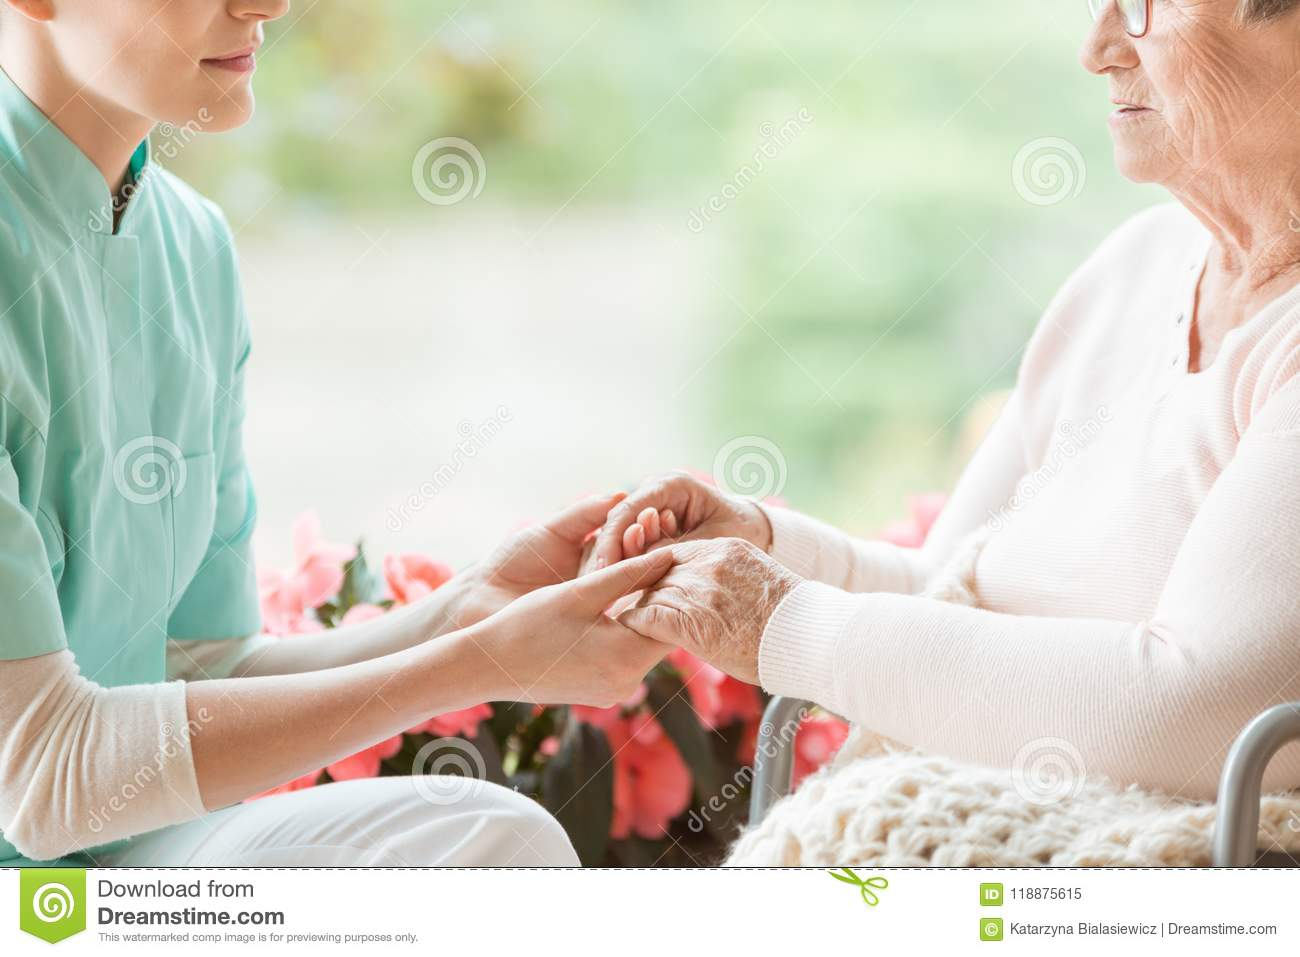 Nurse holding hands of disabled elderly woman